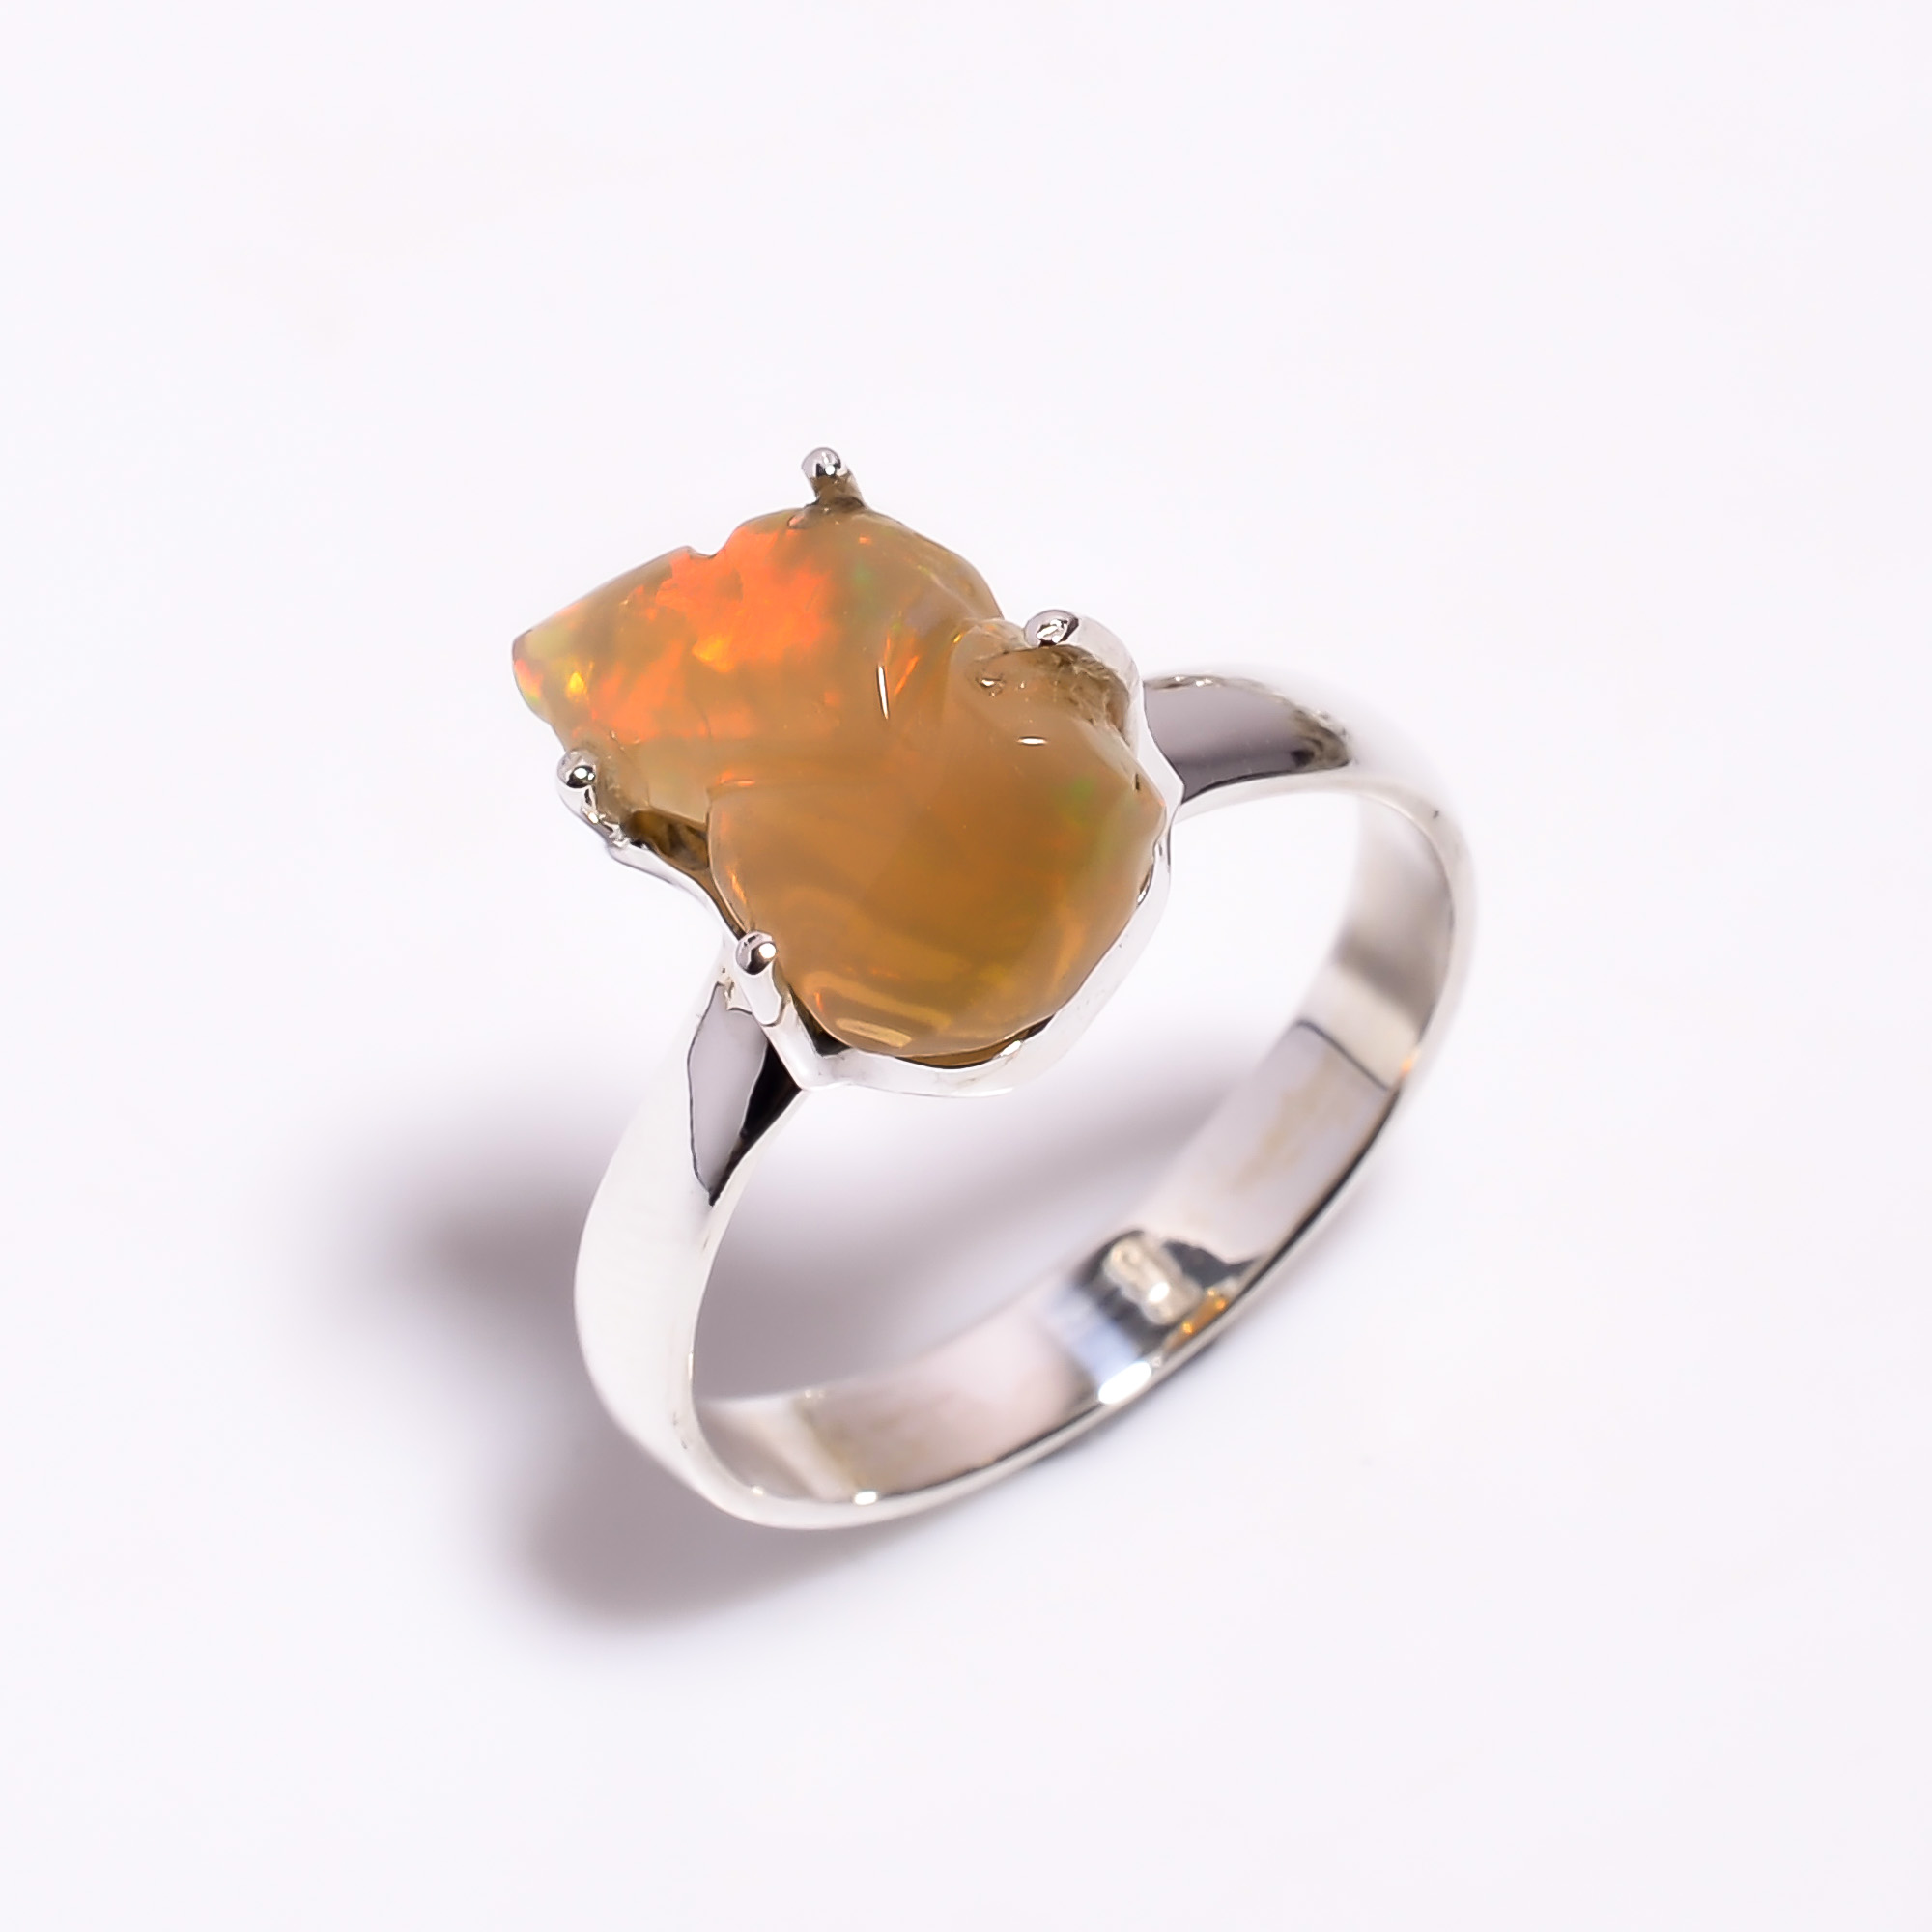 Fire Play Ethiopian Opal Carved Gemstone 925 Sterling Silver Ring Size US 8.75